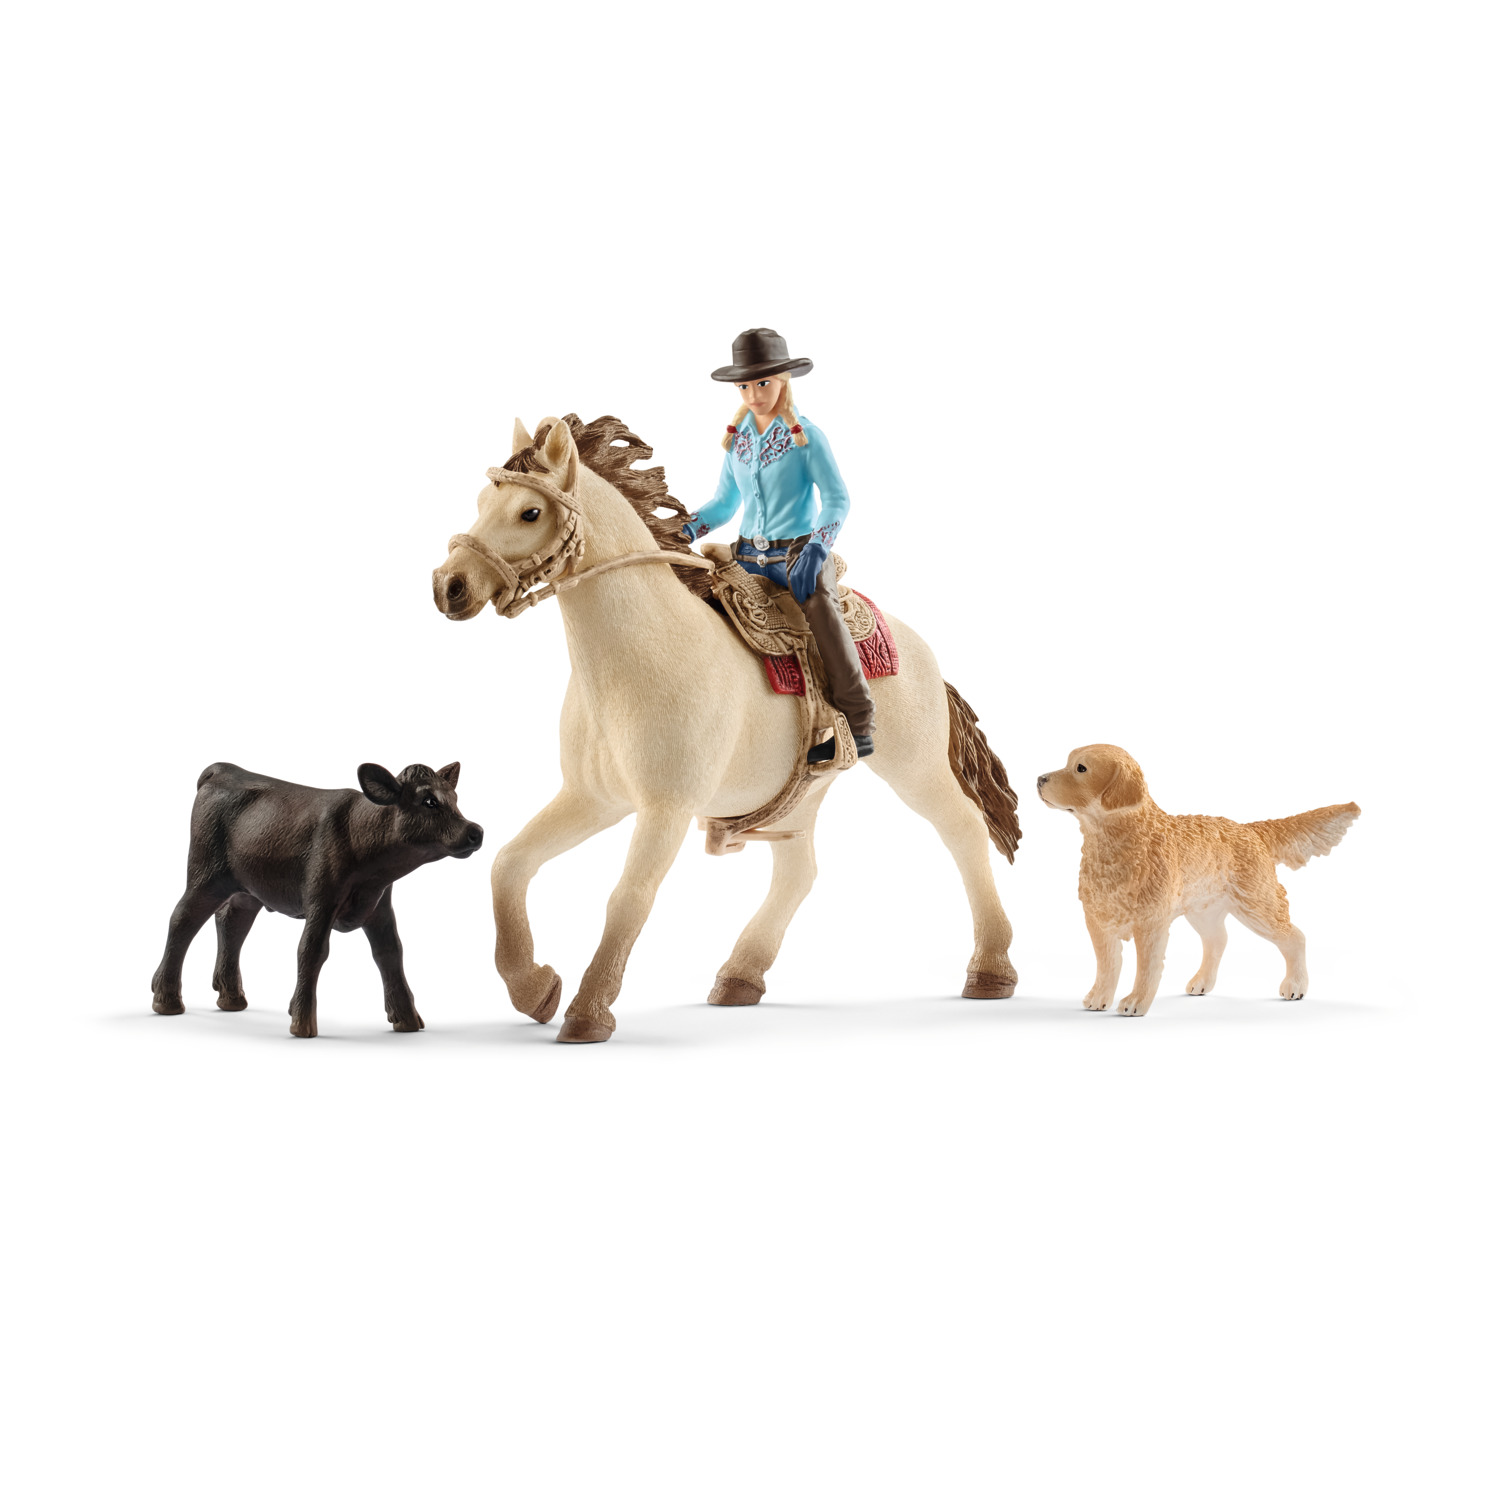 Schleich Farm World, Western Riding Multipack (Horse with Rider, Dog, Calf) Toy Figure by Schleich USA Inc